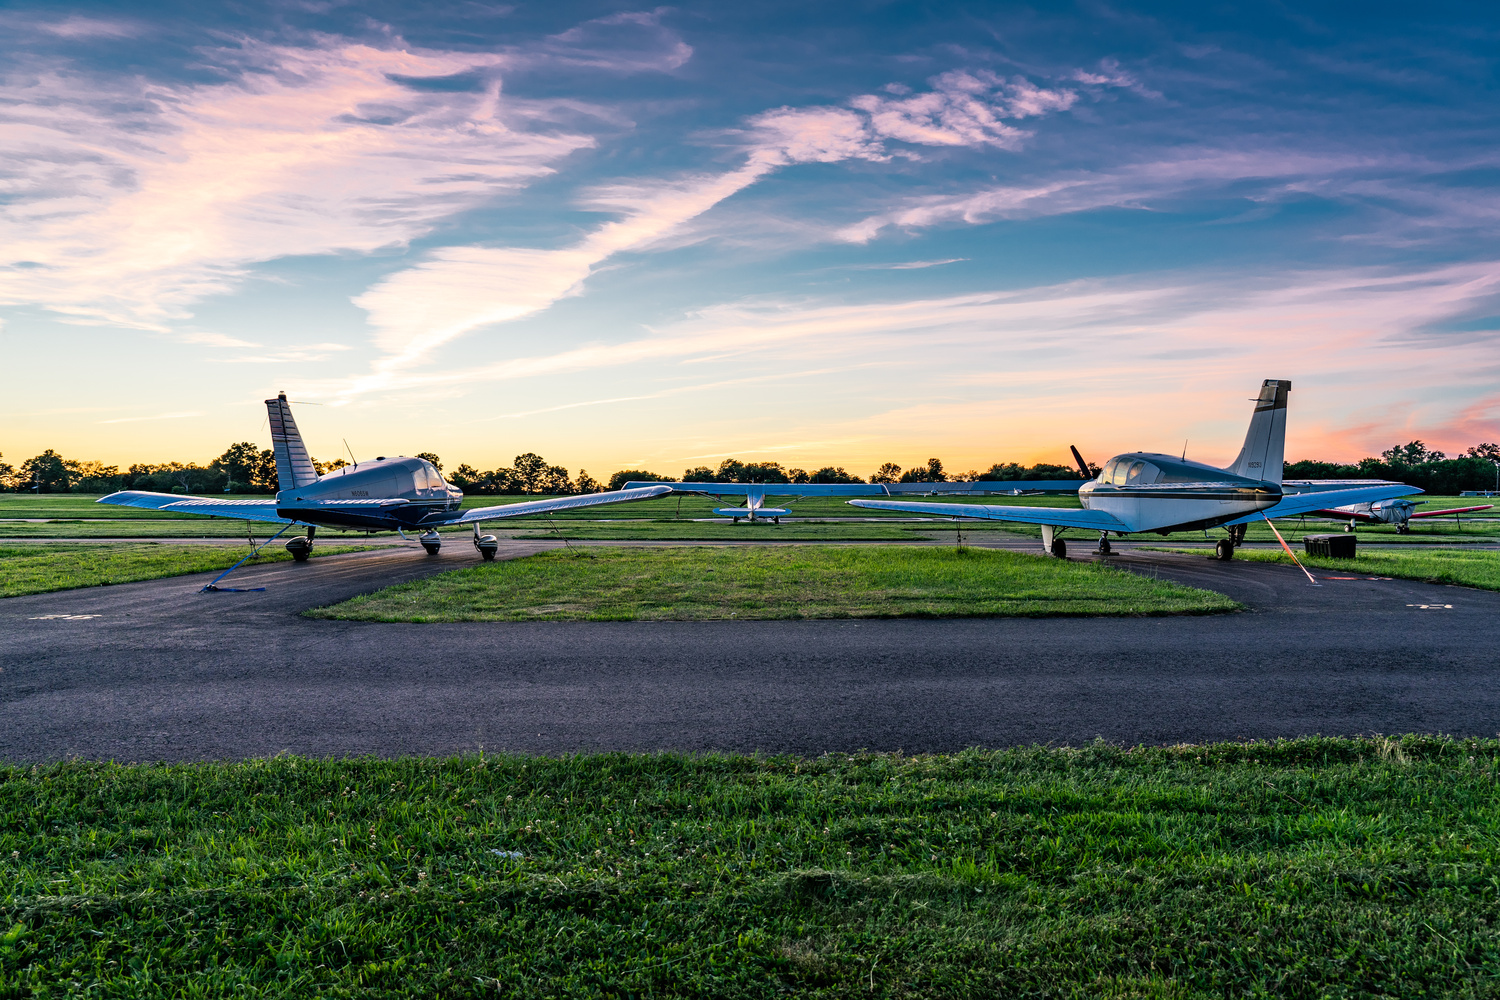 Airplane Sunset at Kupper Airport by Alexander Lobozzo